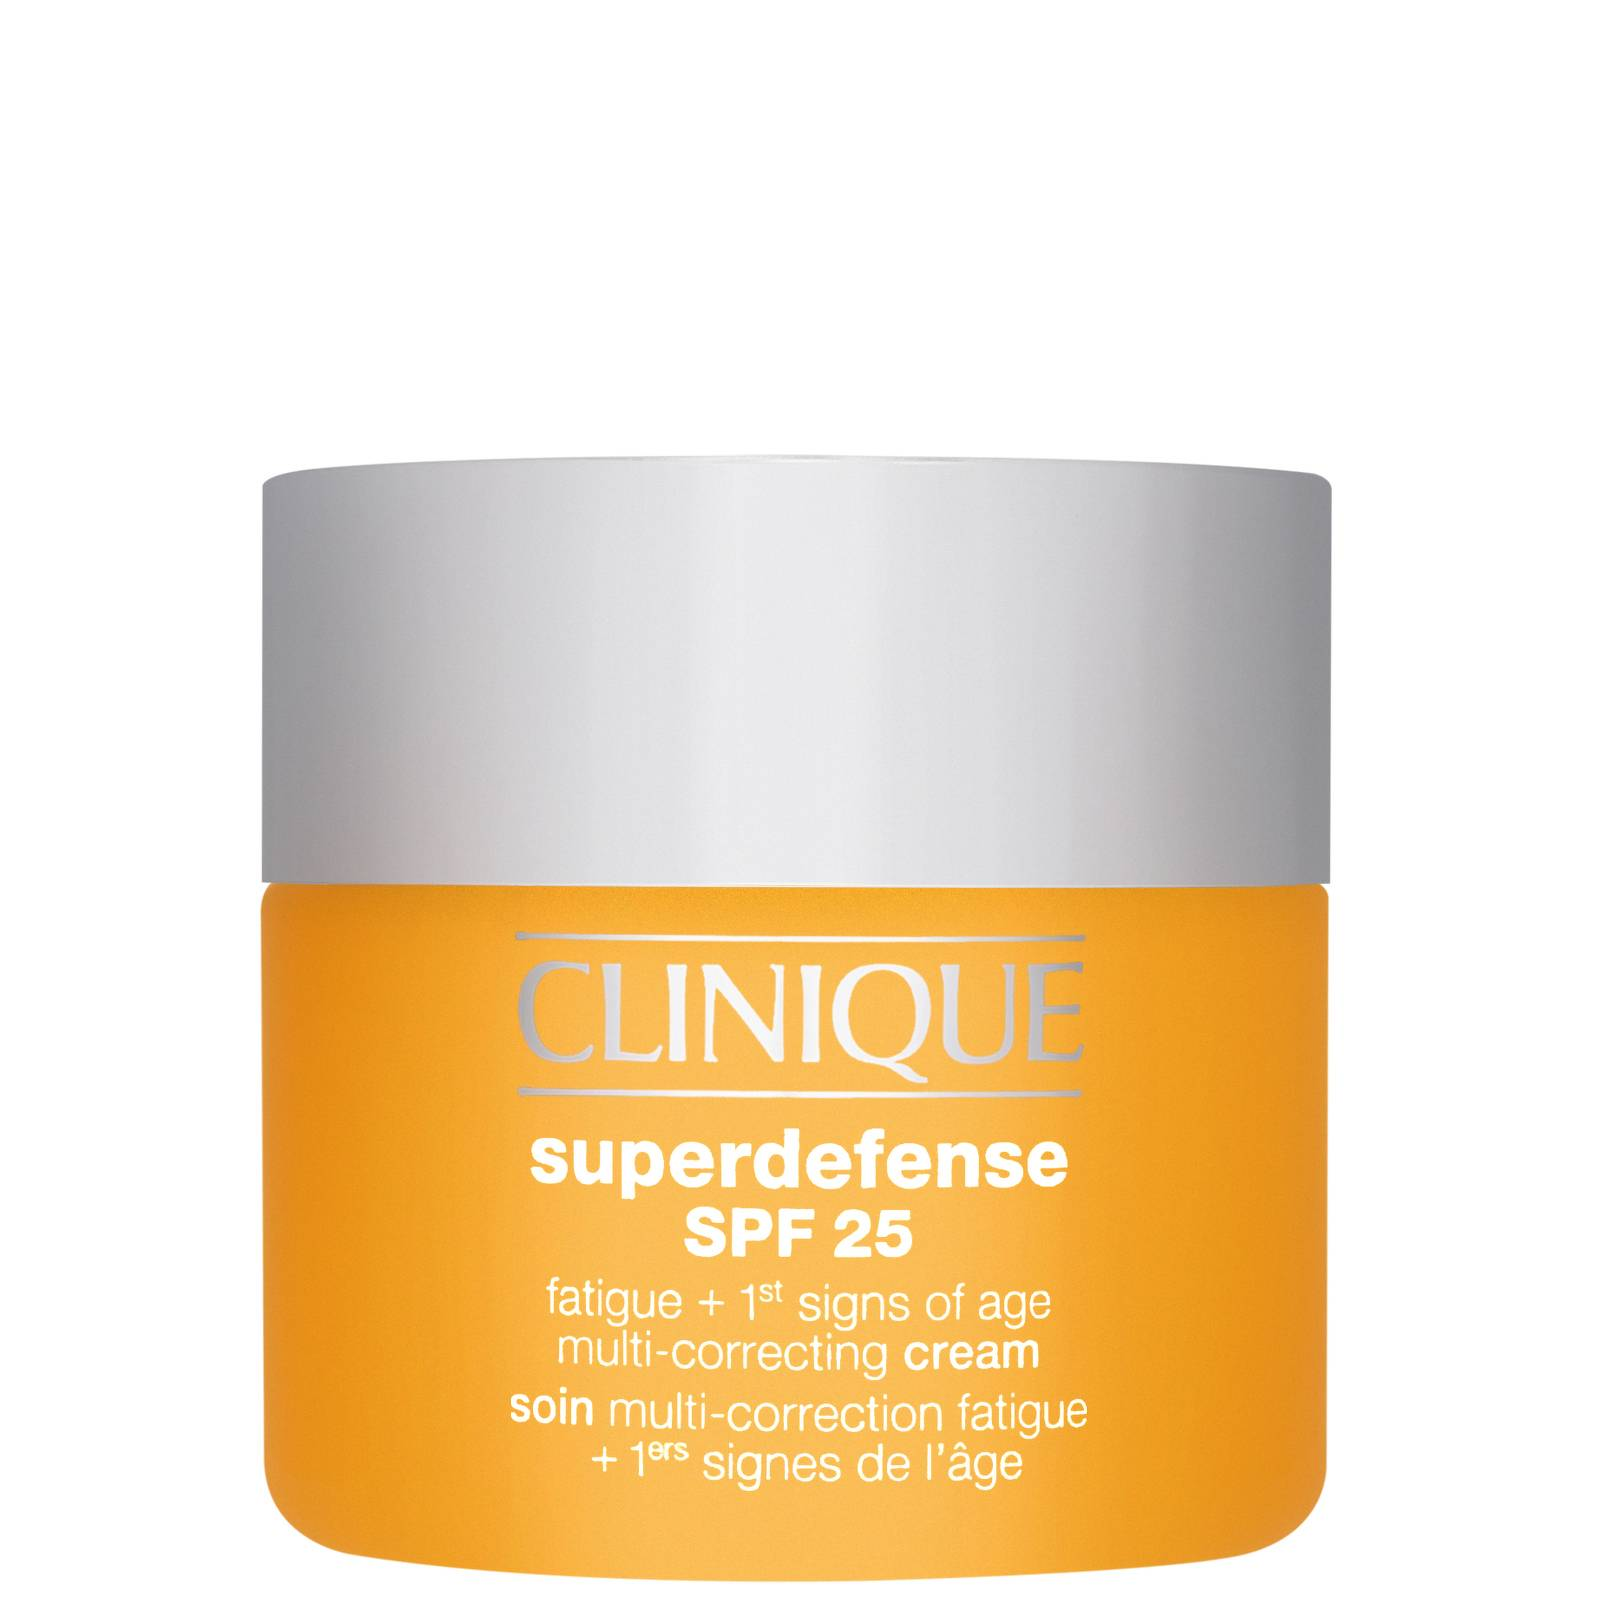 Clinique - Superdefense Fatigue + 1st Signs of Age Multi-Correcting Cream for Very Dry to Dry Combination Skin SPF25 50ml  for Women